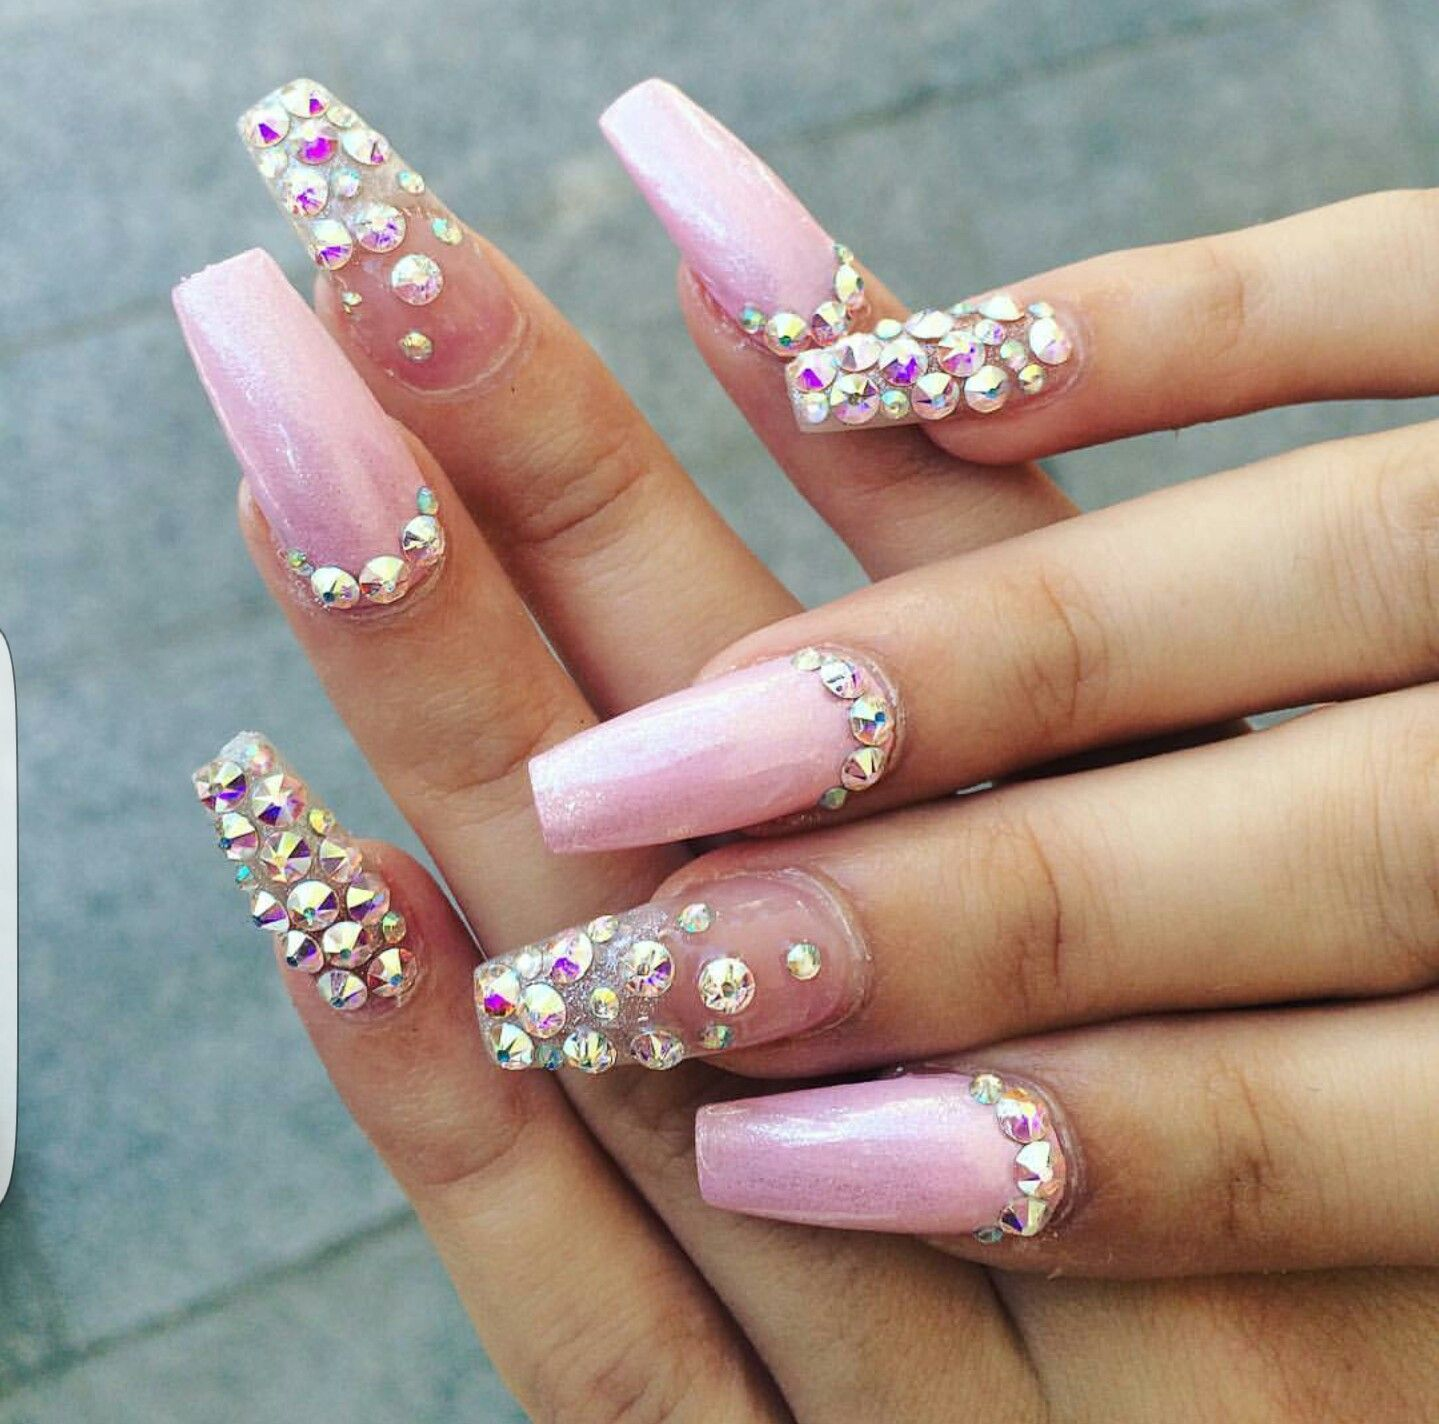 Pin by Maria Panti on Φορέματα | Pinterest | Deluxe nails and Manicure